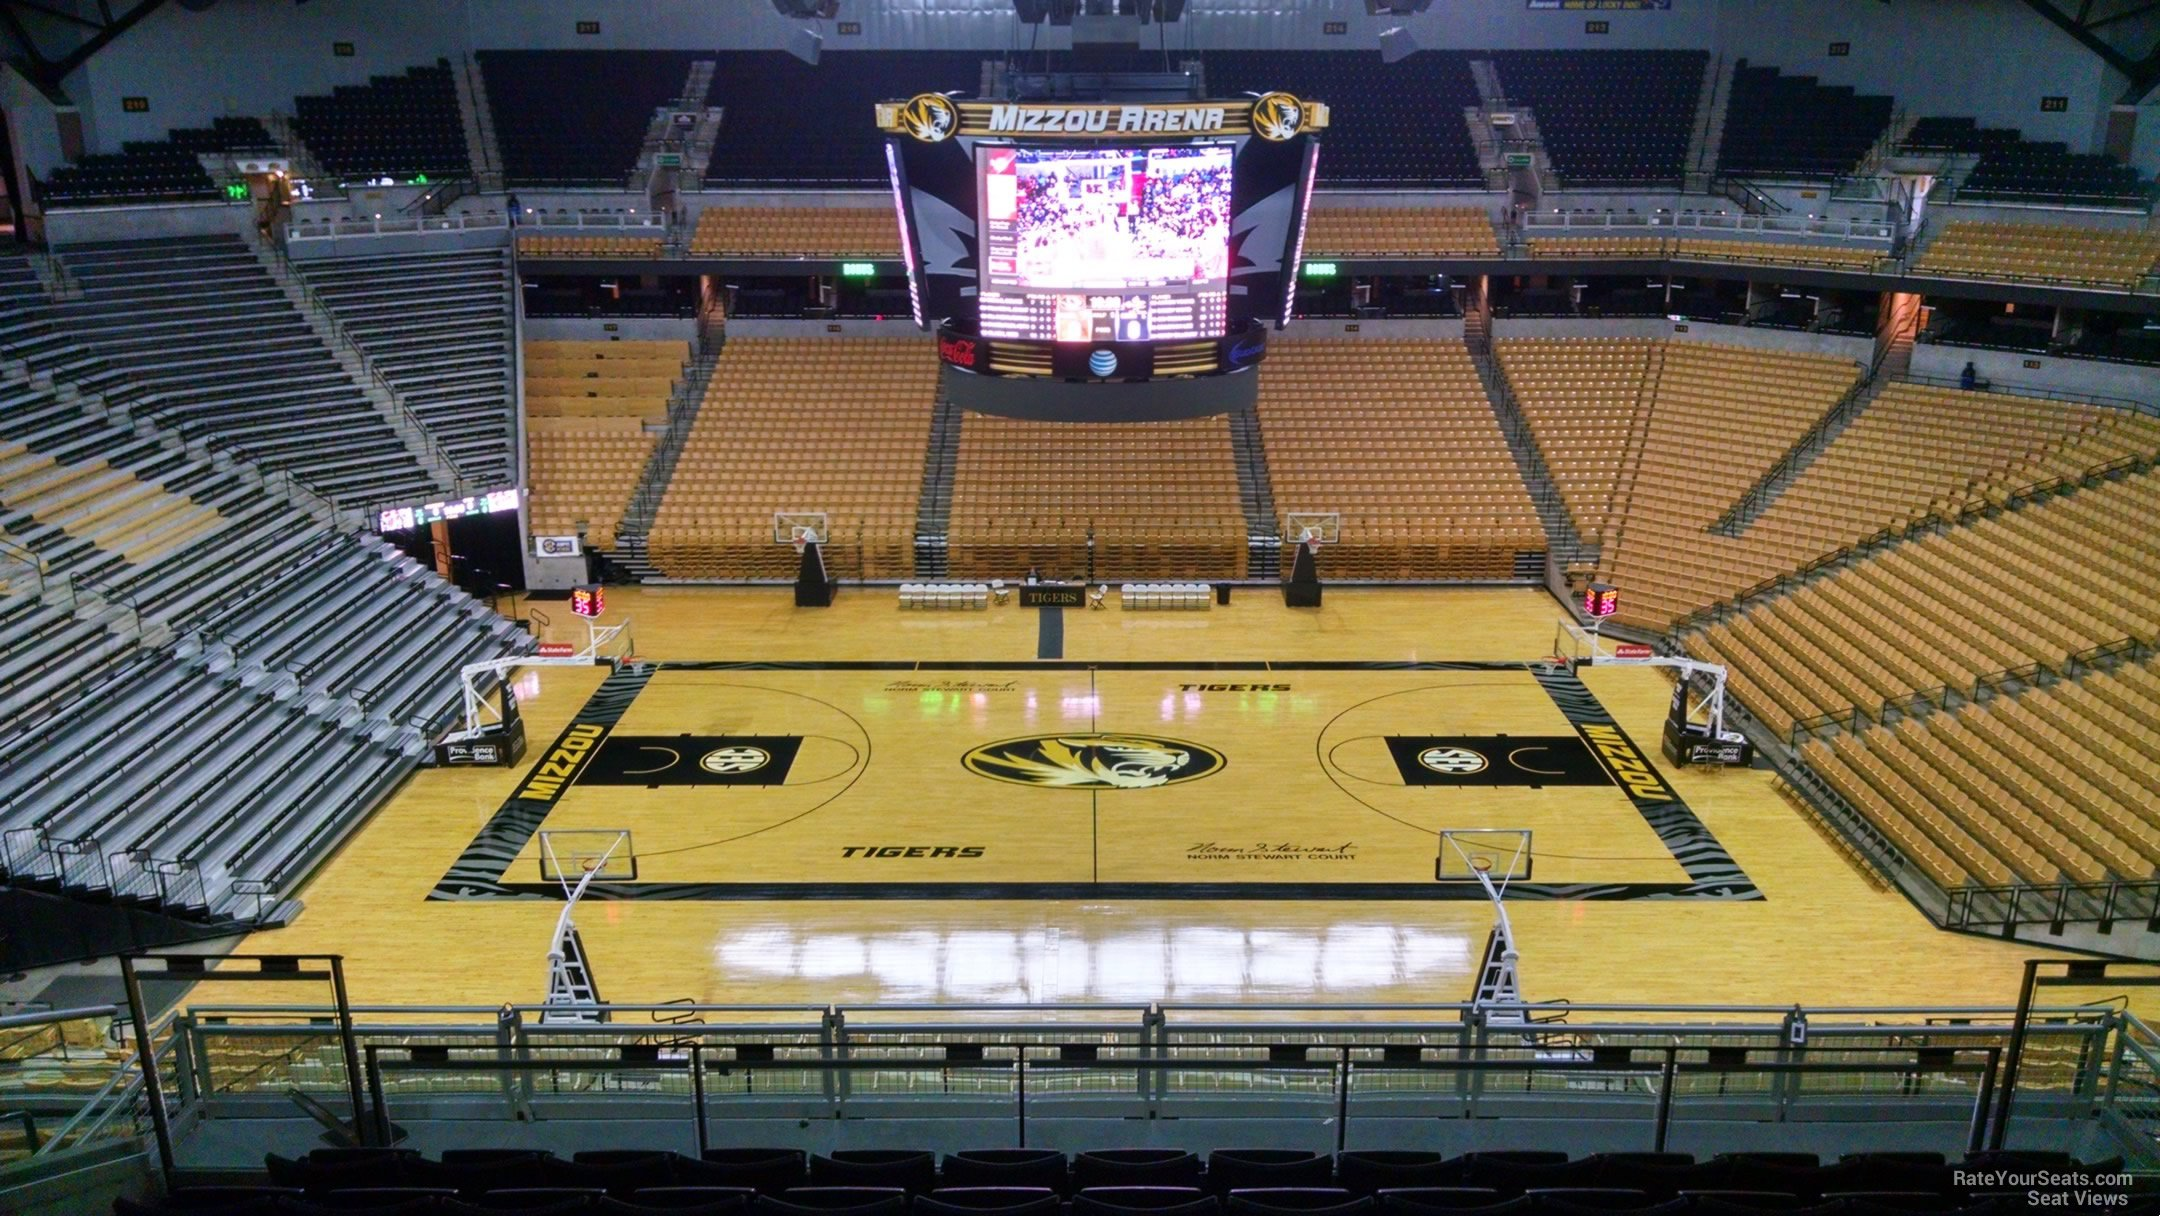 Mizzou arena section 206 rateyourseats com